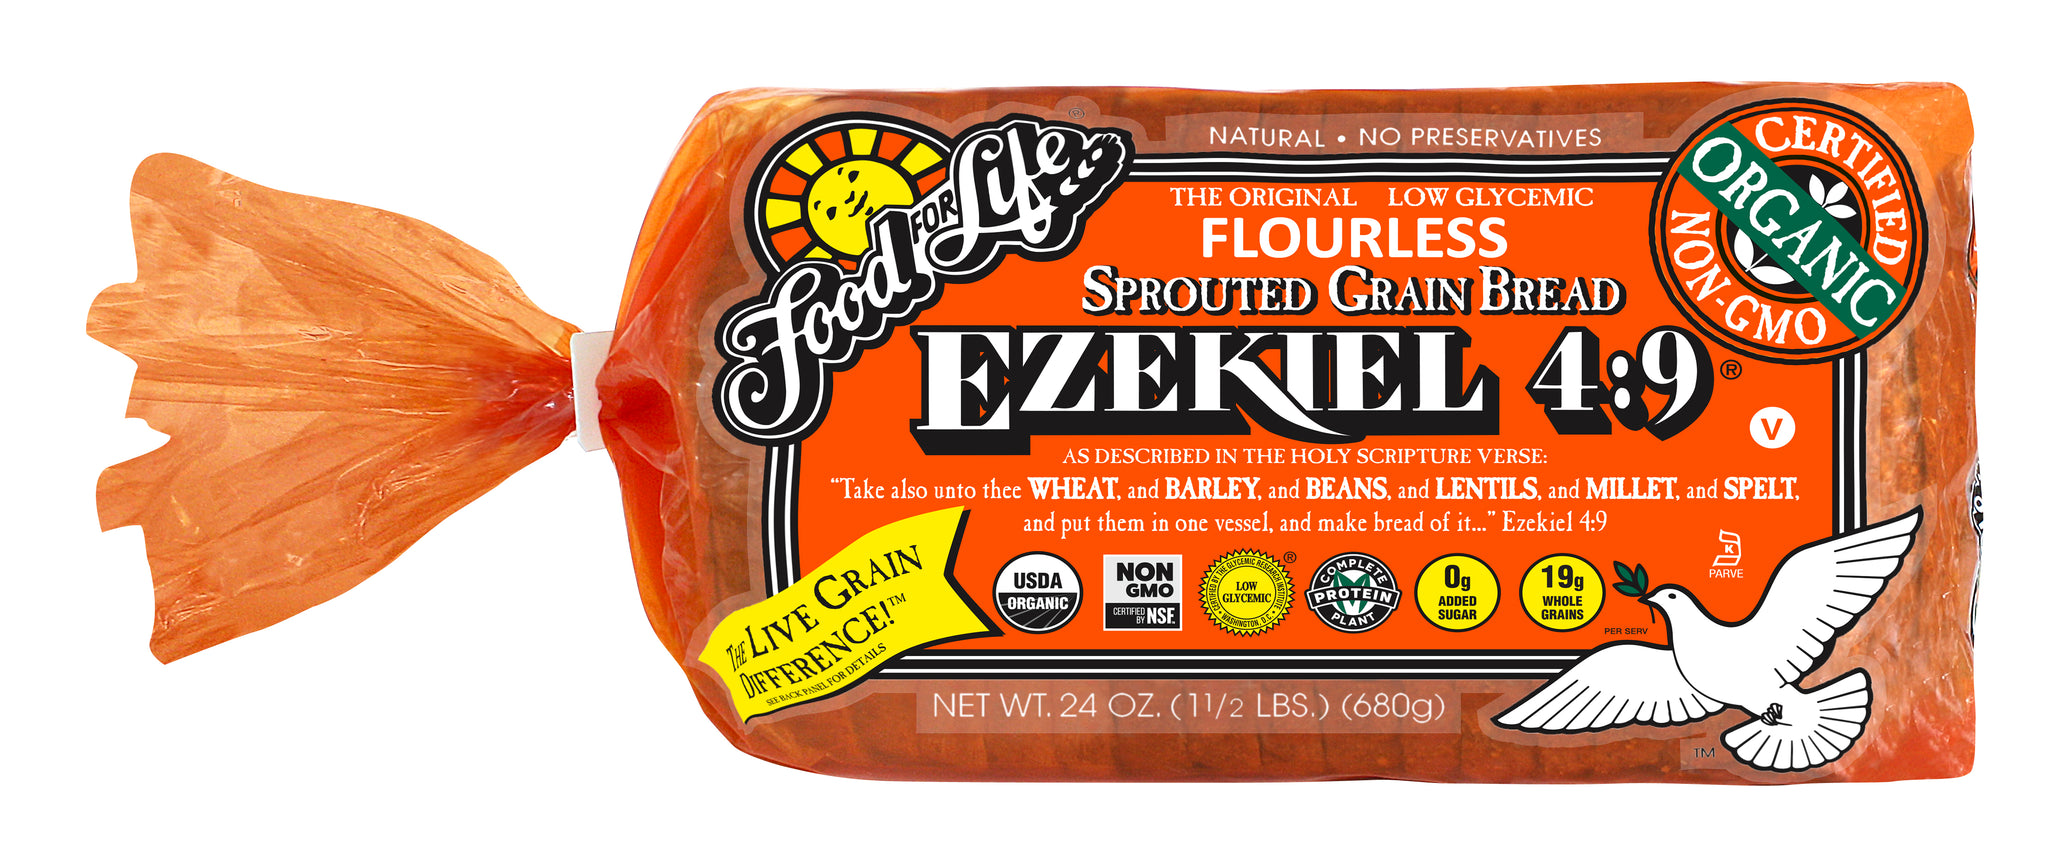 Food For Life Organic Ezekiel 4:9 Sprouted Whole Grain Bread, 24 Oz (Pack of 6)